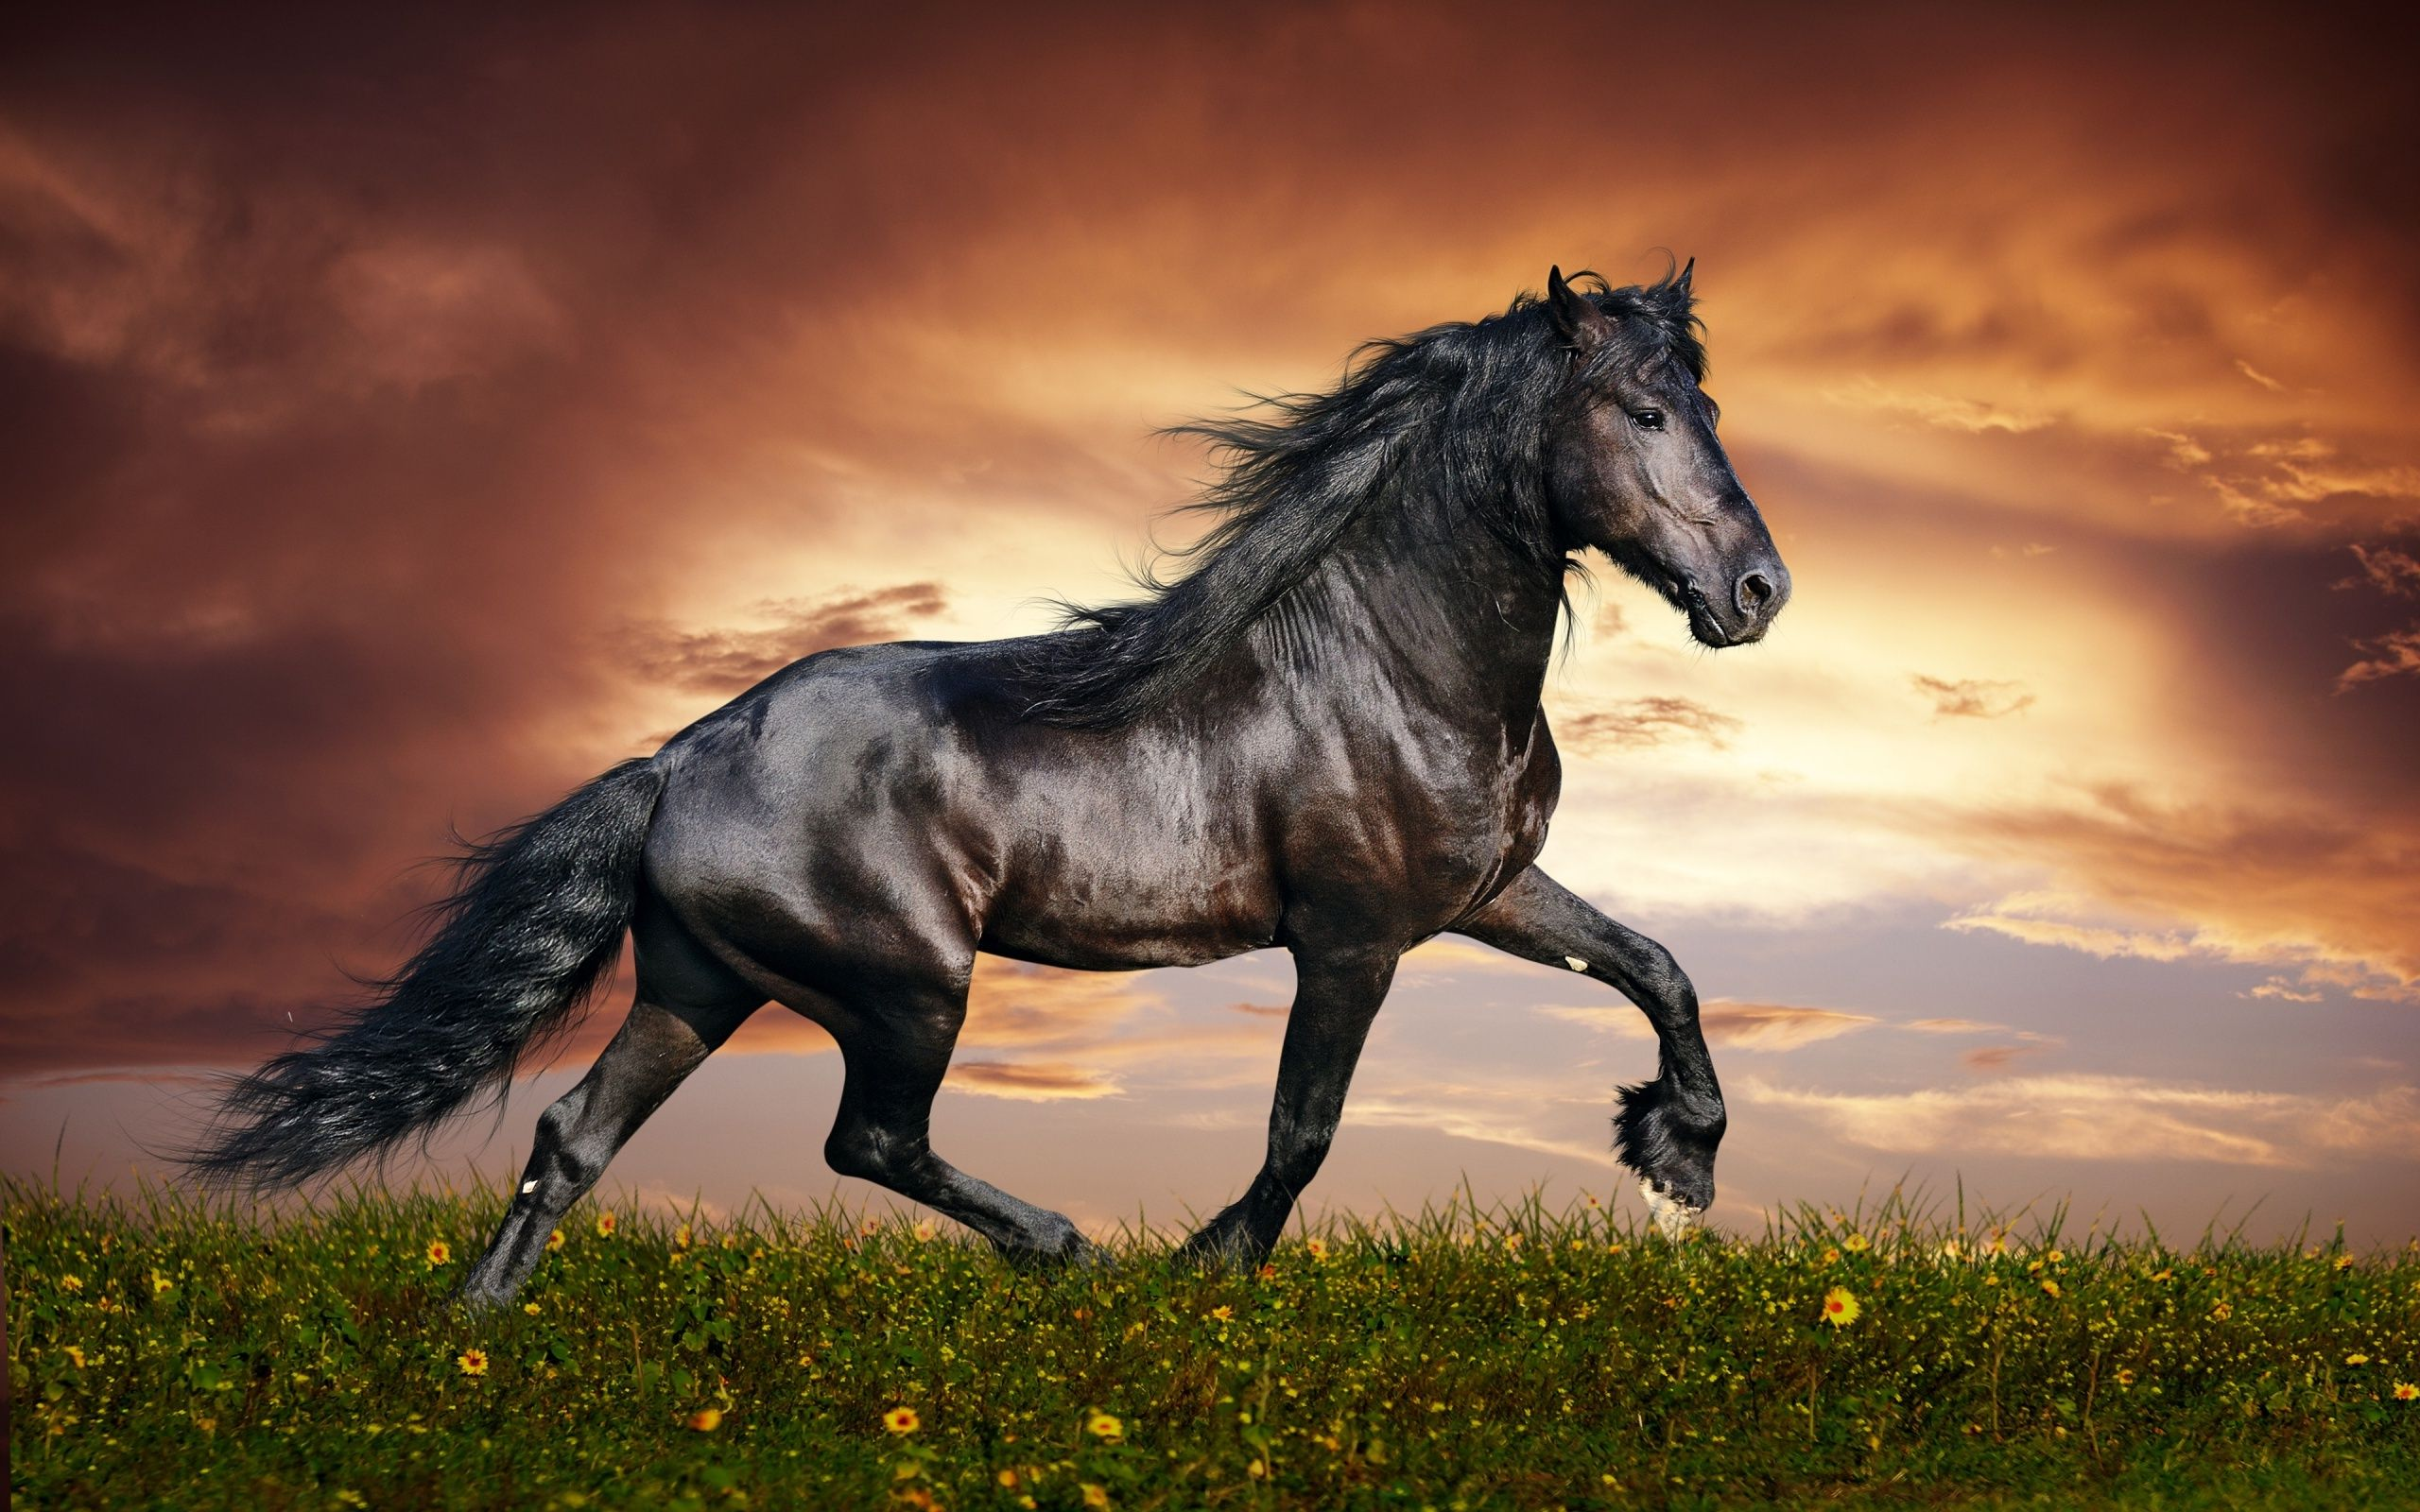 arabian horse hd wallpapers | horse desktop wallpapers | cool